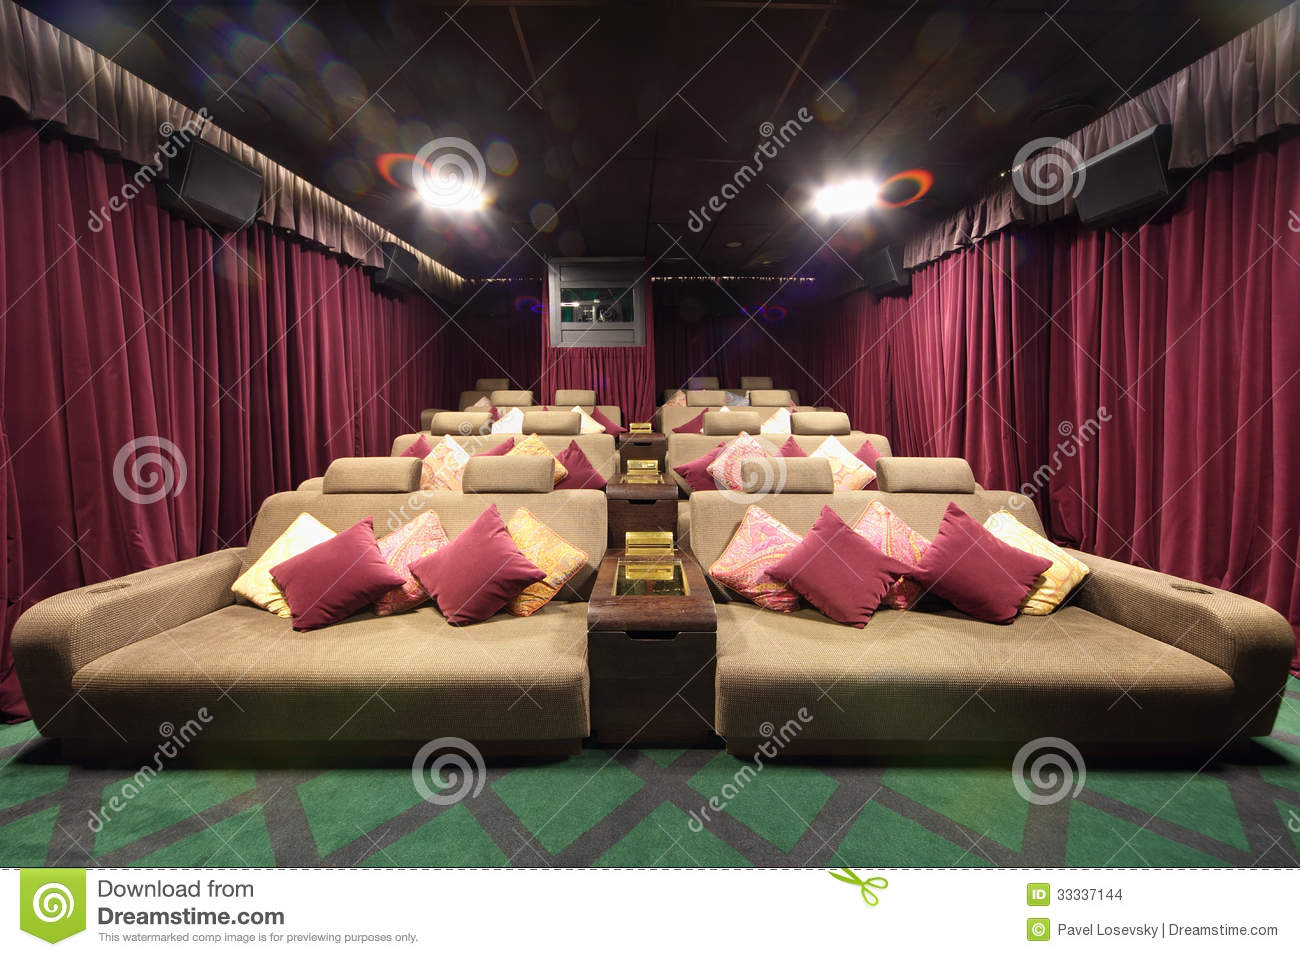 Small Hall Of Cinema With Soft Couches With Pillows Stock Images Image 33337144